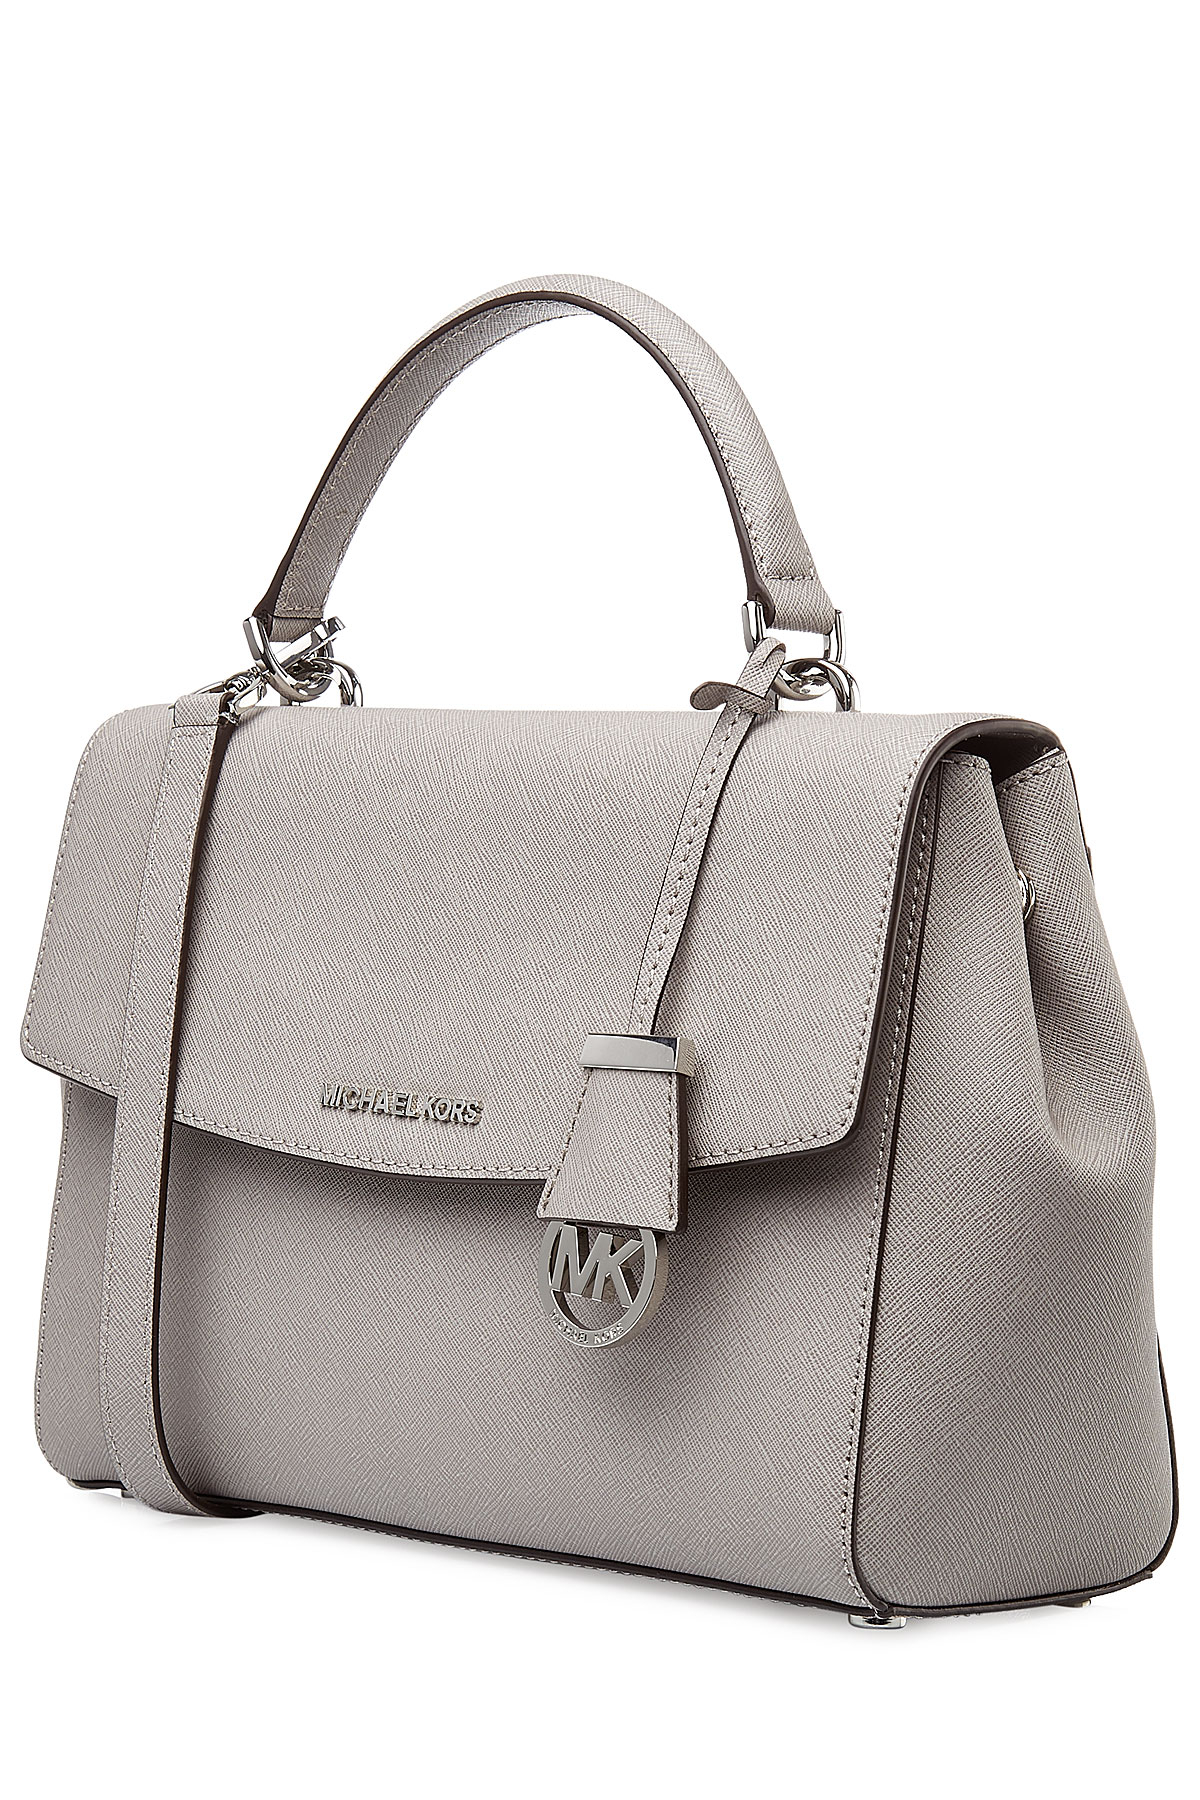 7c2652aa8980 MICHAEL Michael Kors Ava Small Leather Tote - Grey in Gray - Lyst